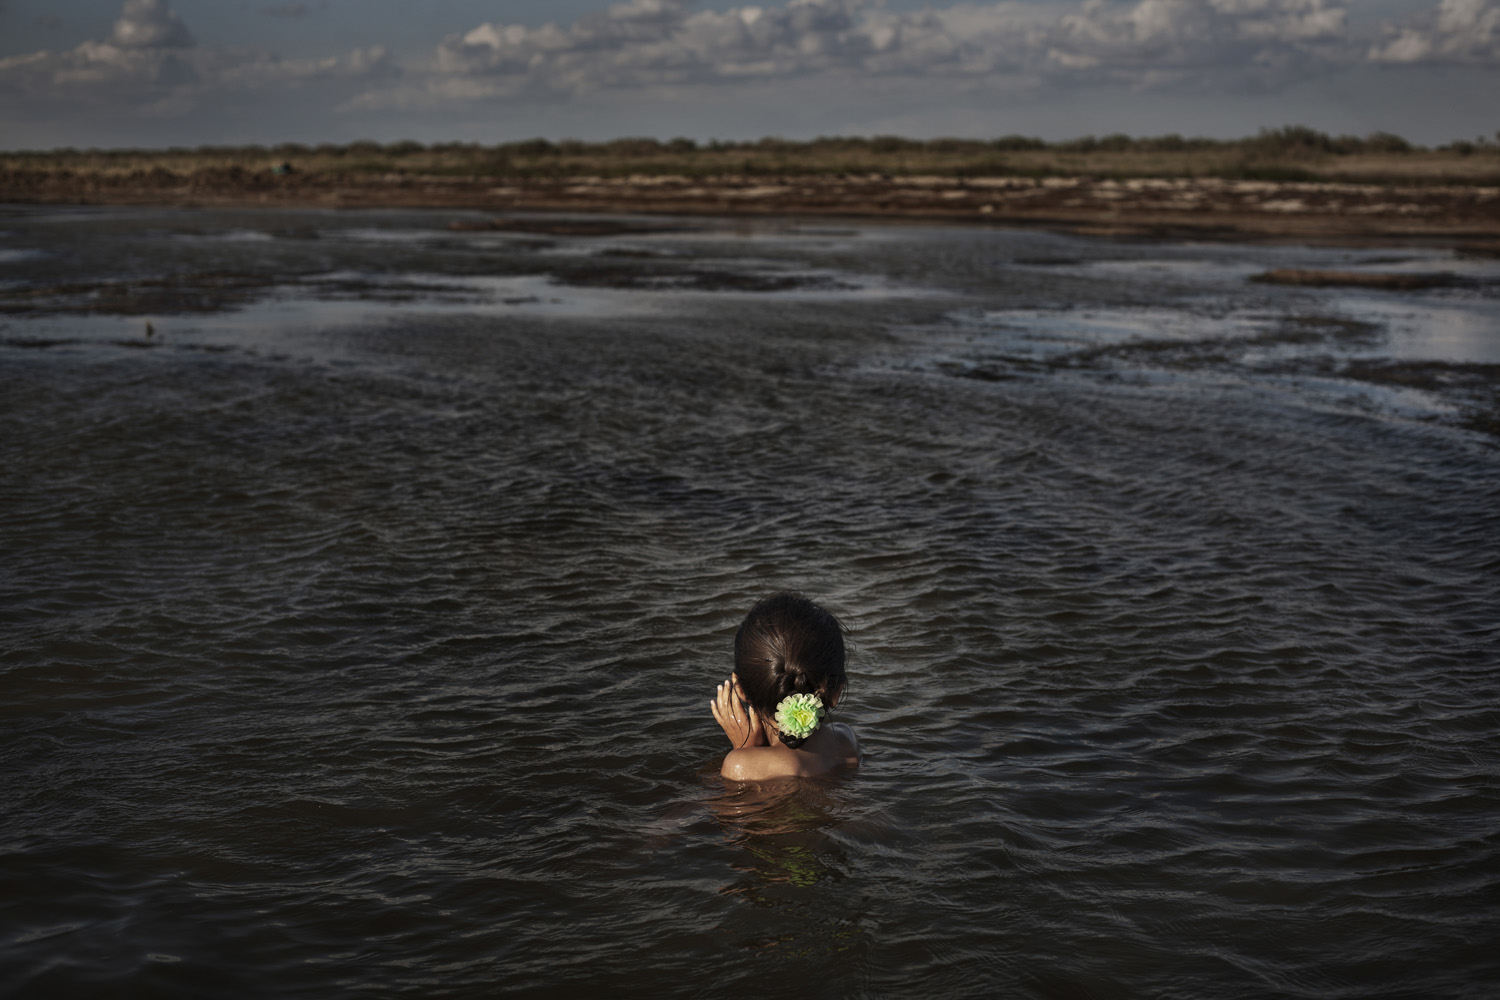 July 24, 2011. Madina, 7, bathes in the Aral Sea on her third trip to the sea visiting family friends.